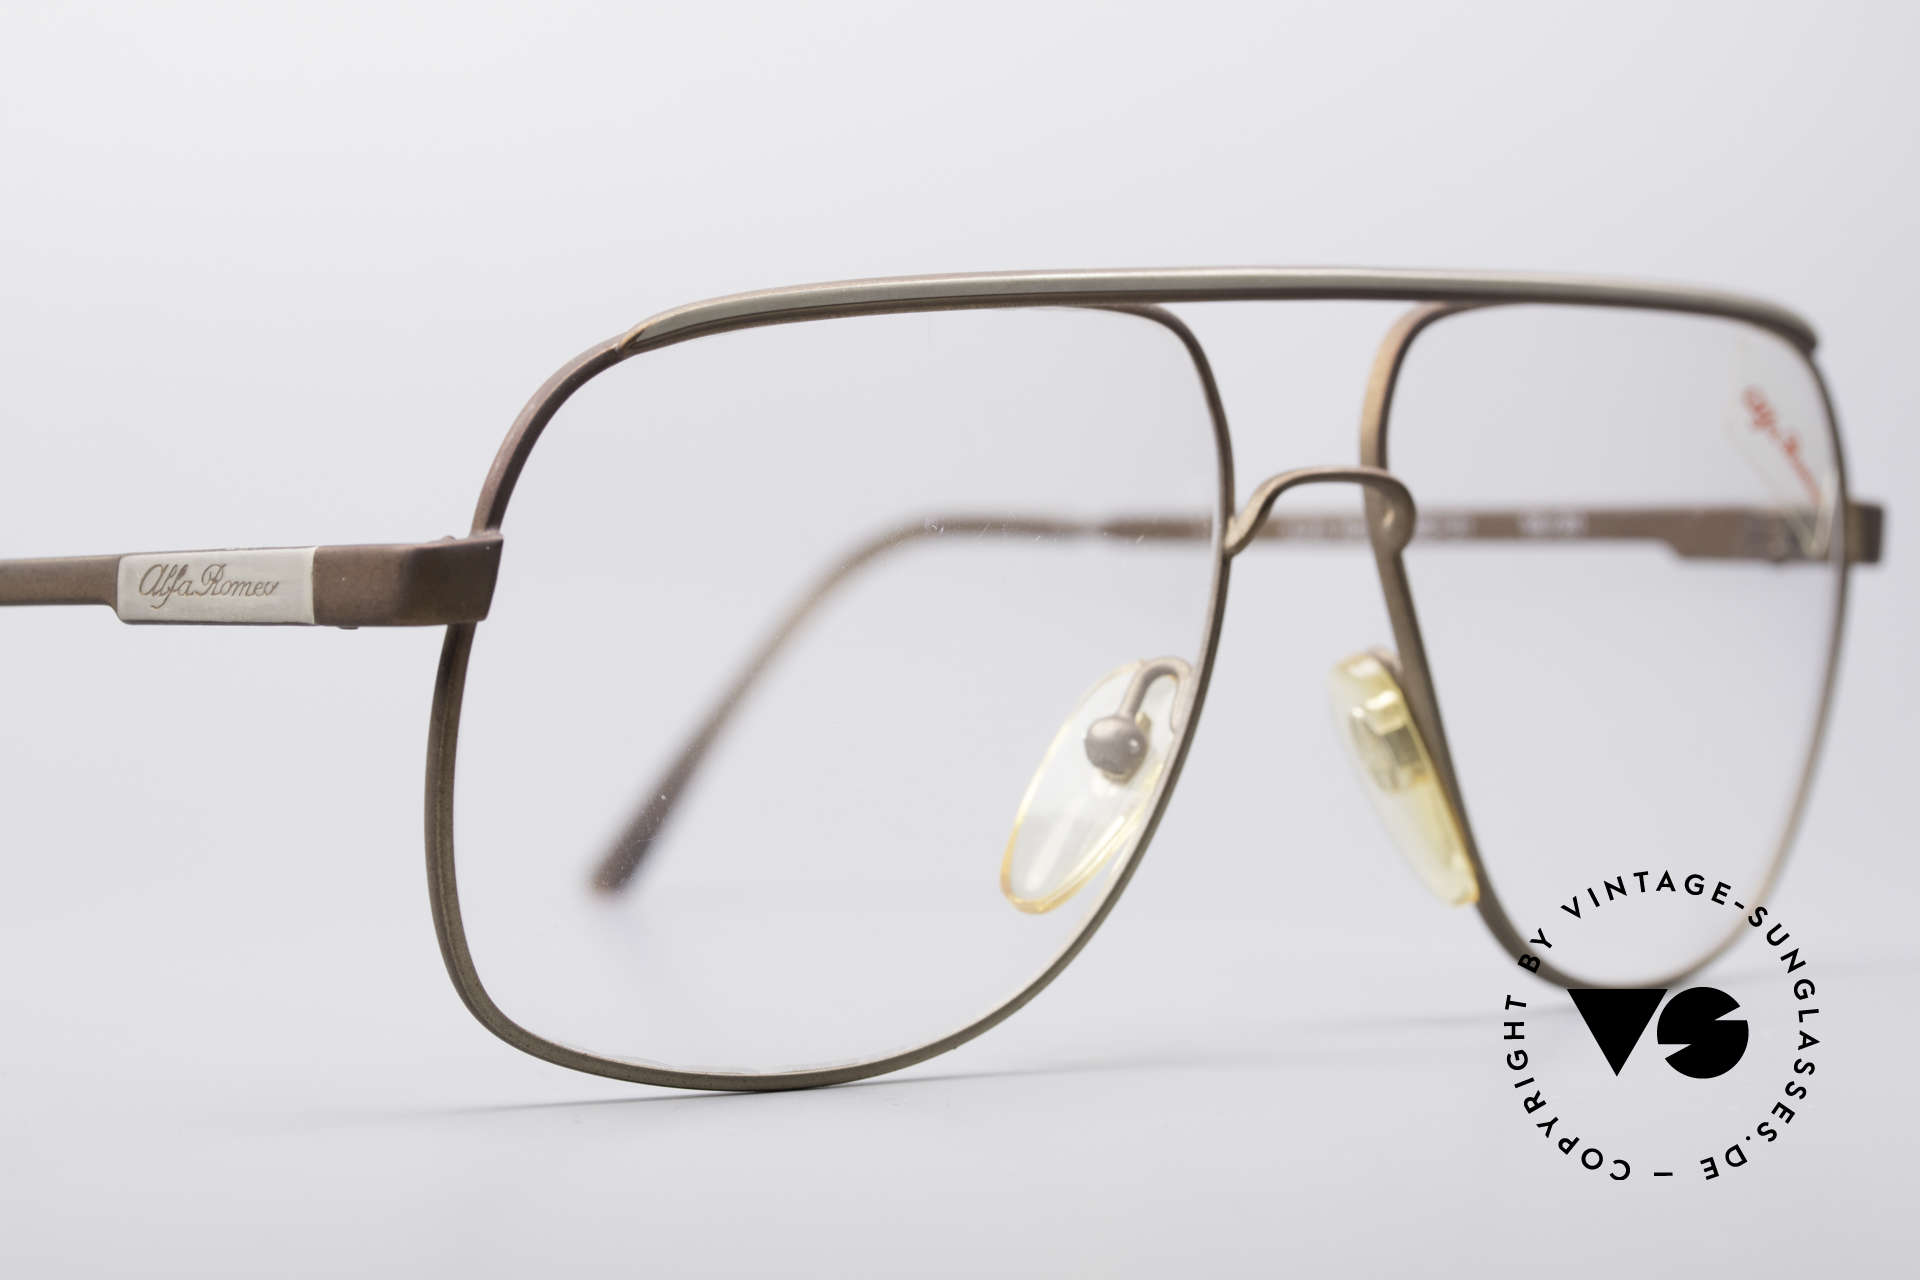 Alfa Romeo 882-21 80's Vintage Glasses, unworn (like all our rare 1980's ALFA ROMEO frames), Made for Men